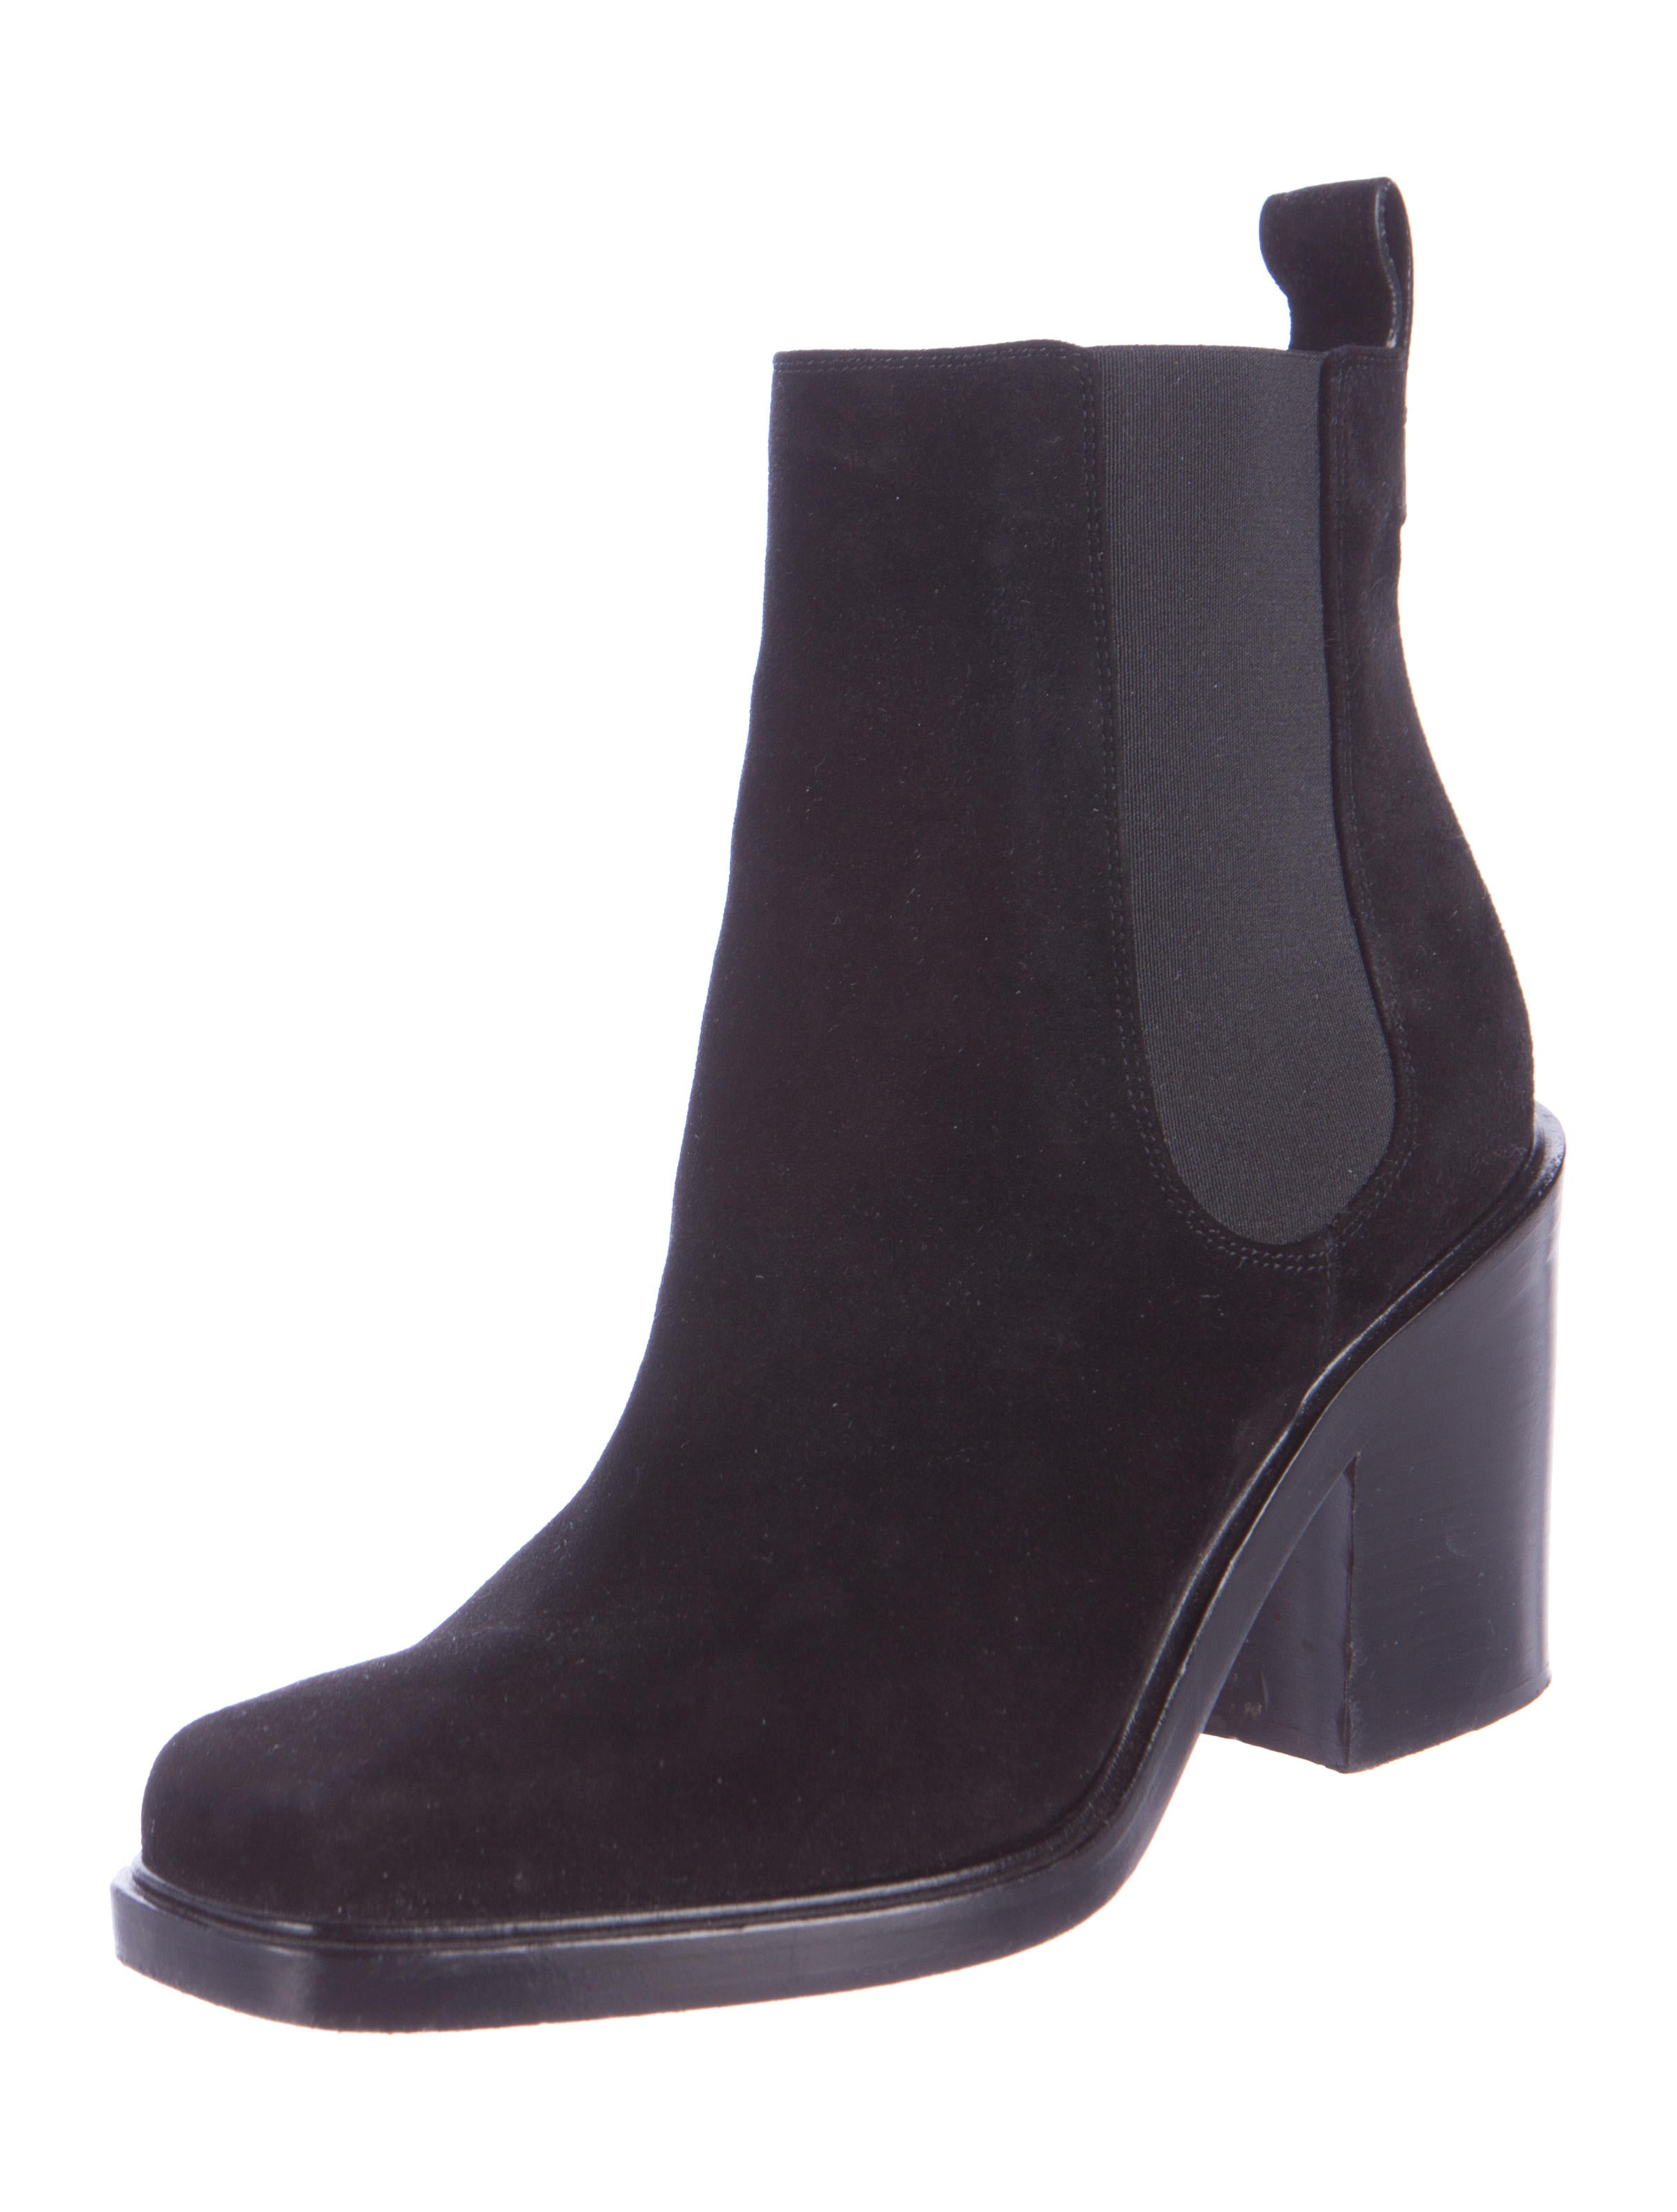 givenchy suede square toe ankle boots shoes giv40041